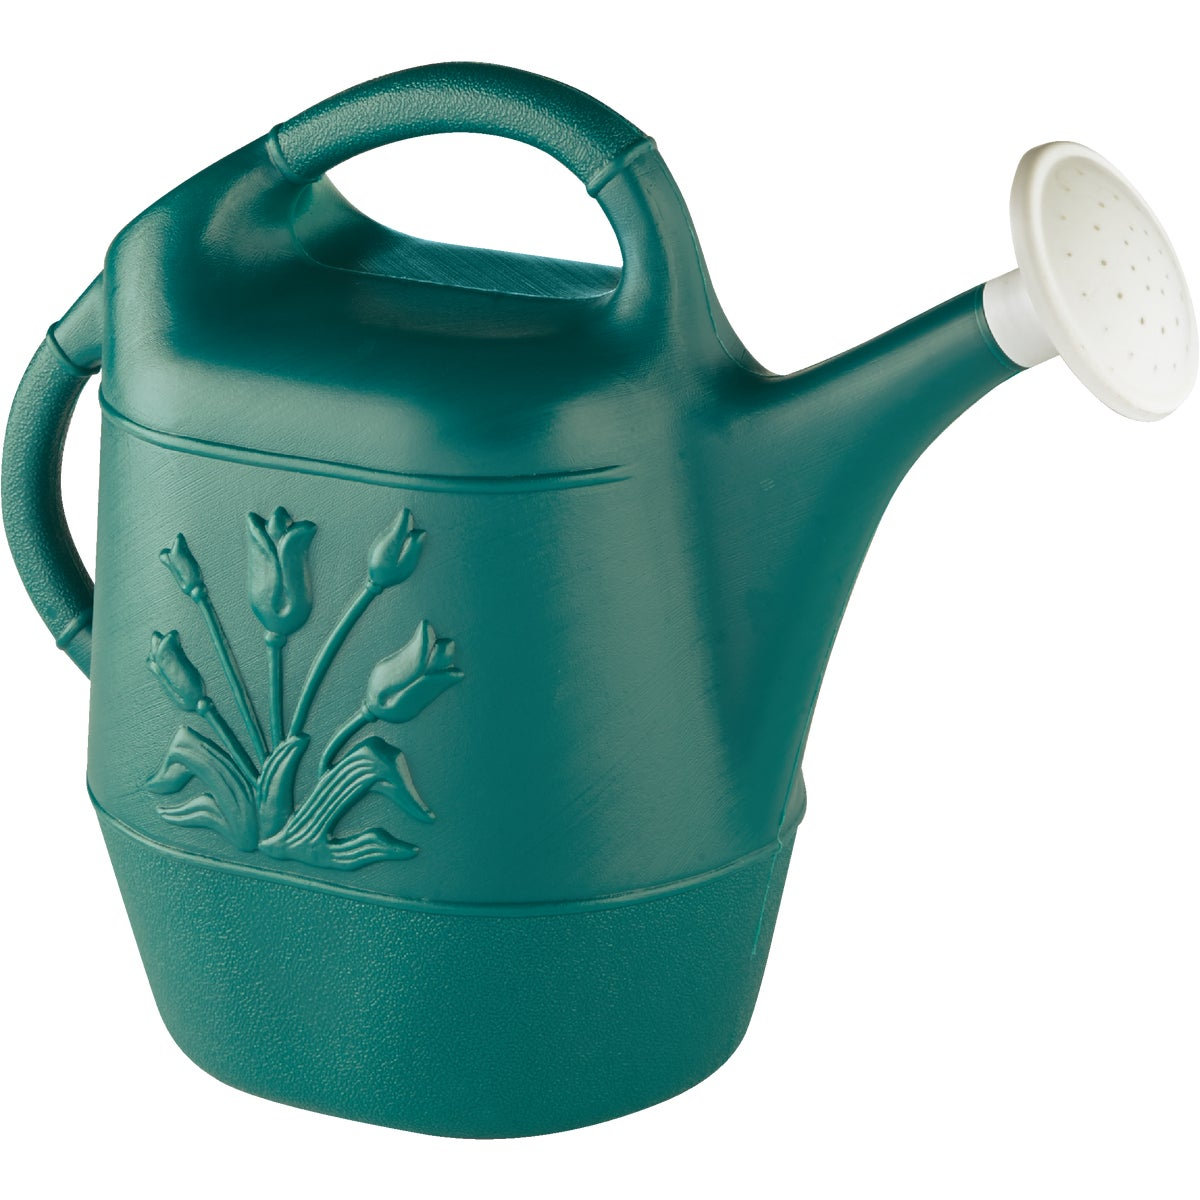 2GAL GREEN WATERING CAN - 30301 by Novelty Mfg Co